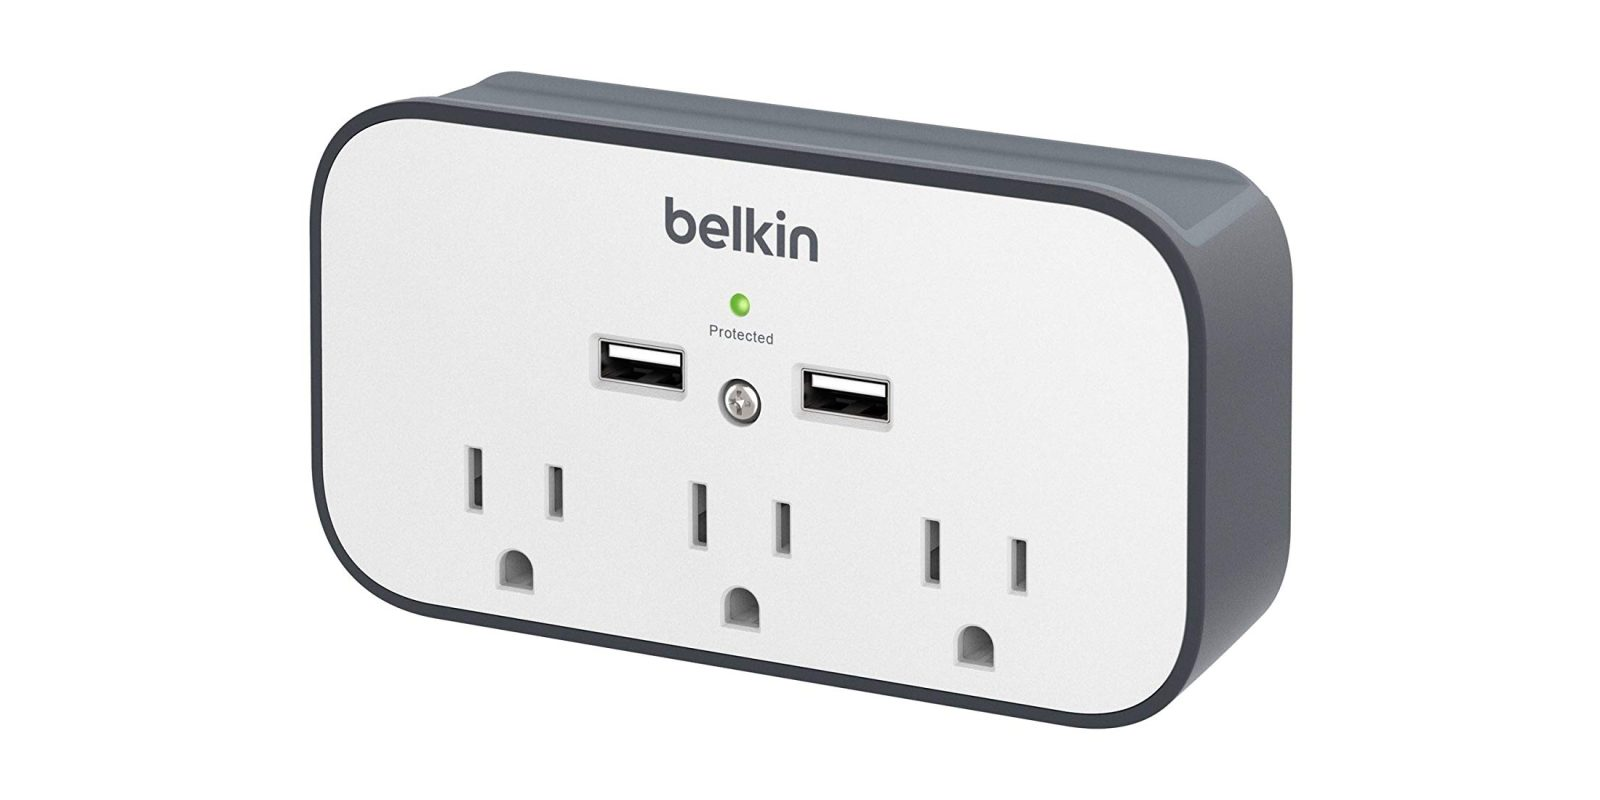 Add 3 outlets and 2 USB ports anywhere with this $16 Belkin surge protector